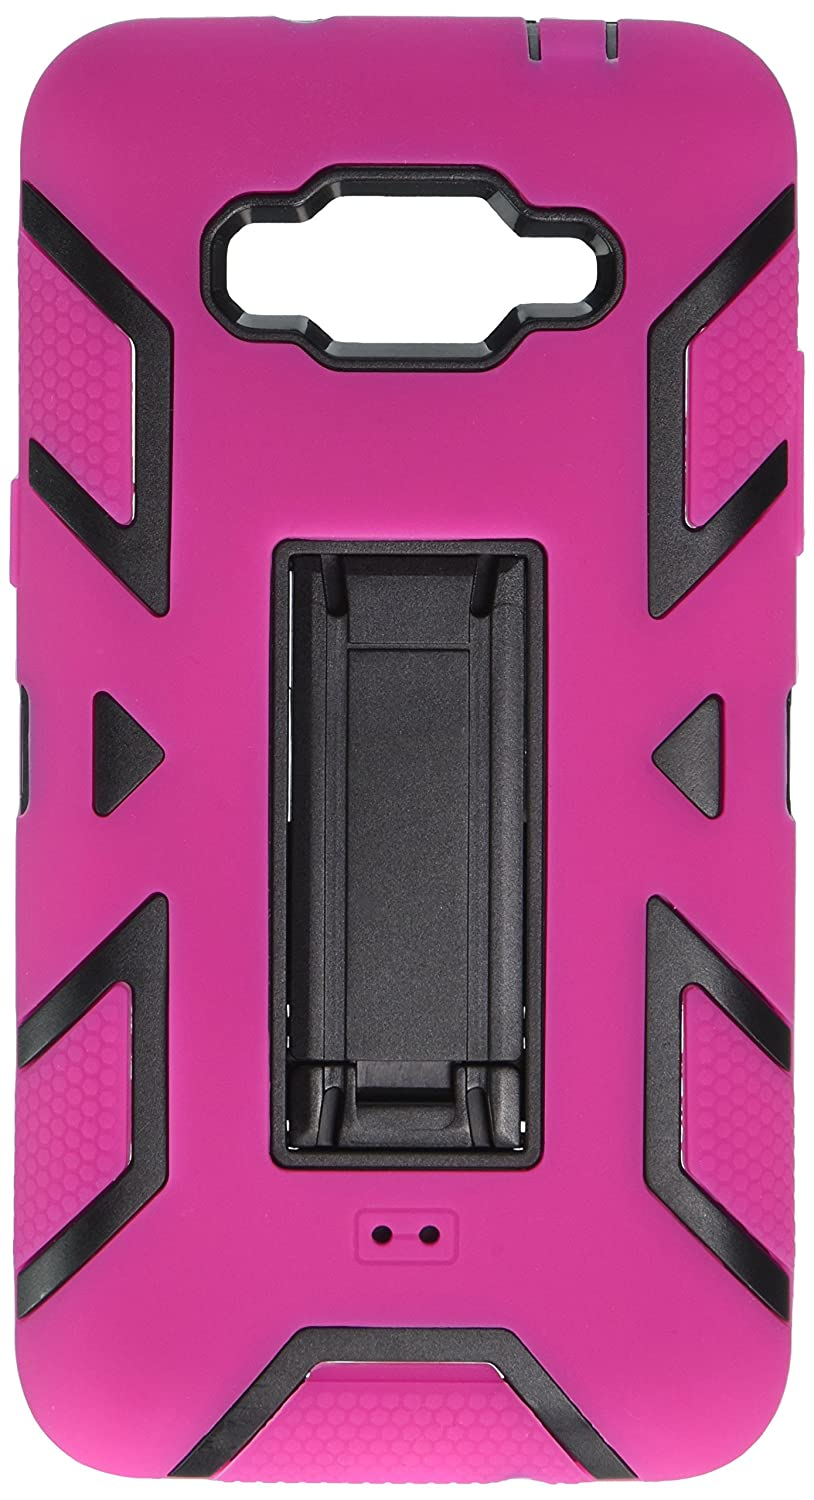 HR Wireless Carrying Case for Samsung Galaxy Grand Prime LTE - Retail Packaging - Black/Hot Pink